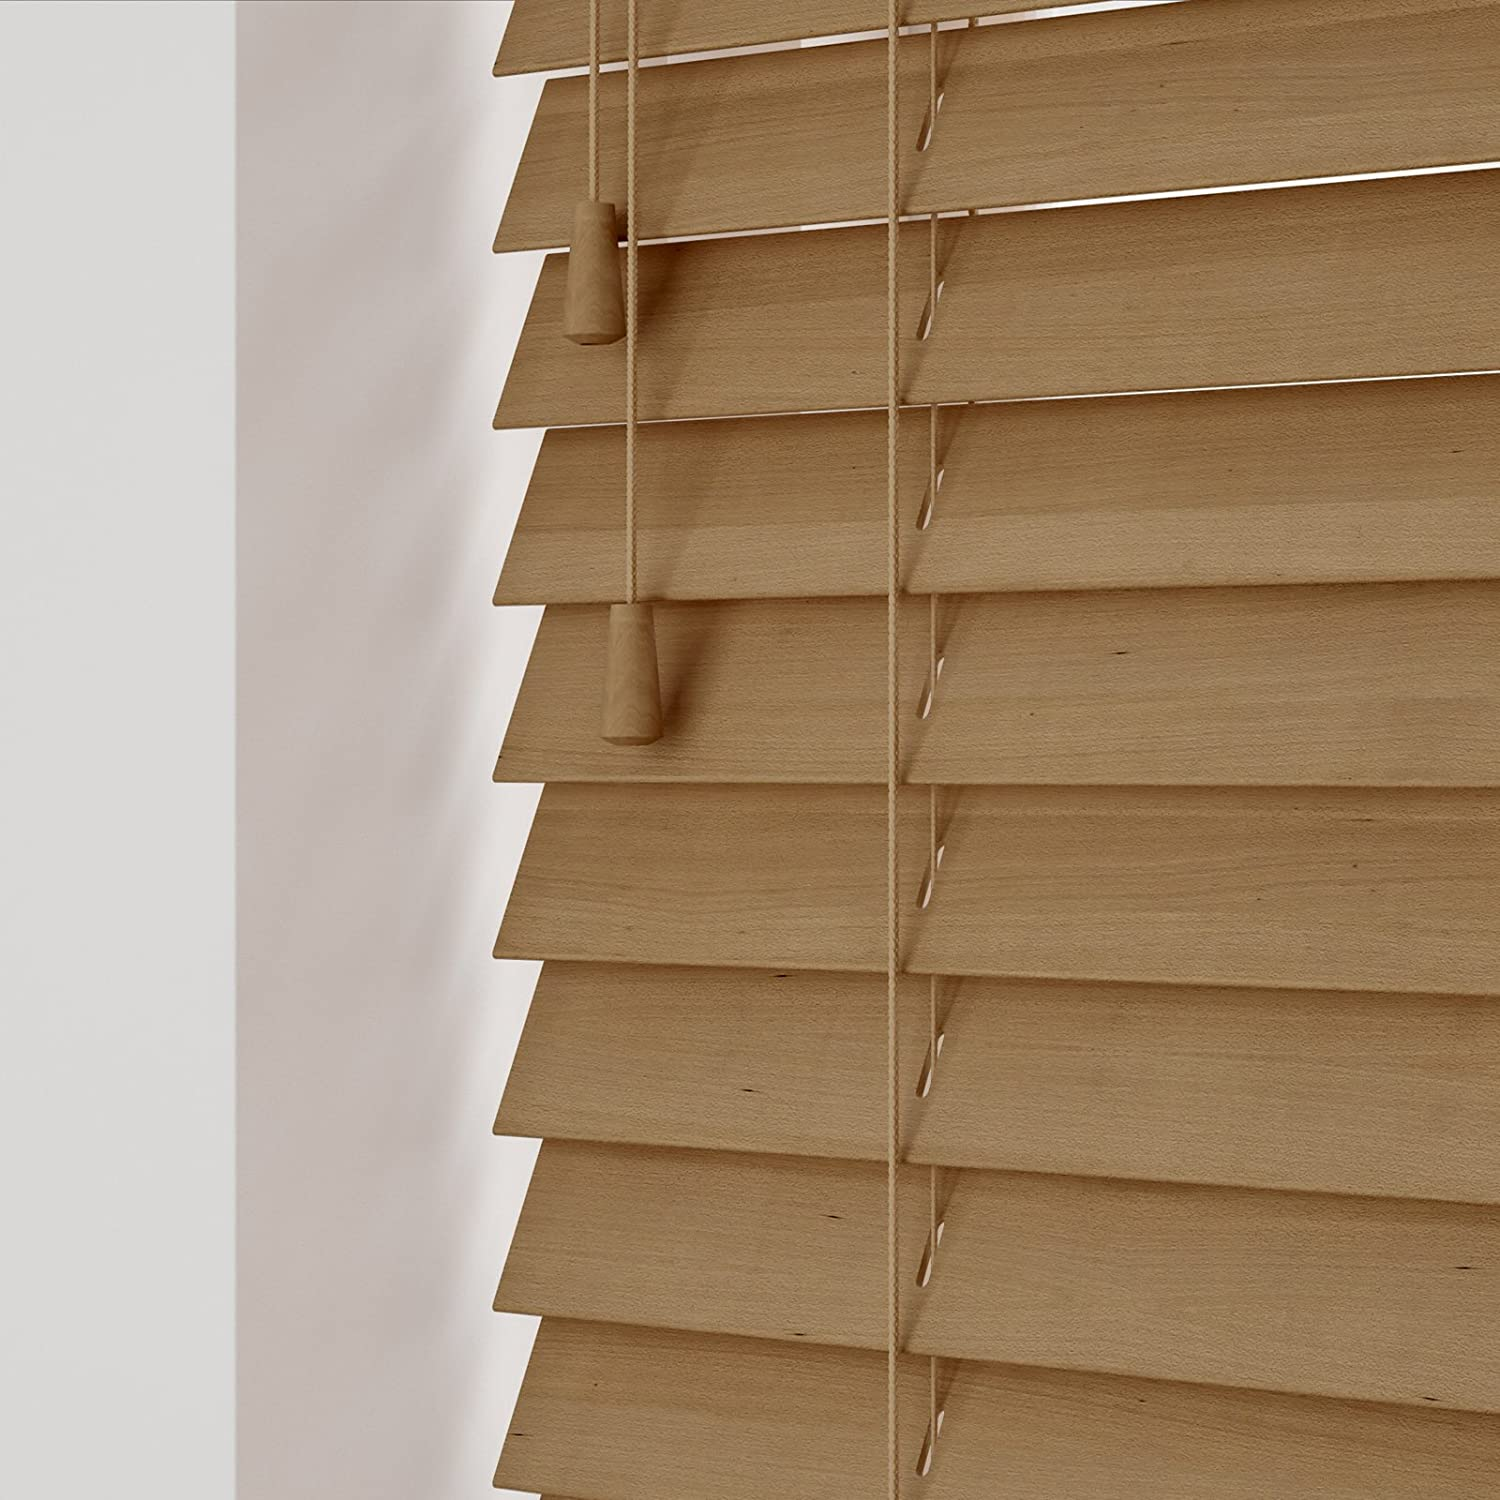 eXtreme® GENUINE WOOD VENETIAN BLIND - TAWNY OAK 50MM WIDE SLAT - MADE TO YOUR OWN SIZES! (60cm wide x 180cm height)